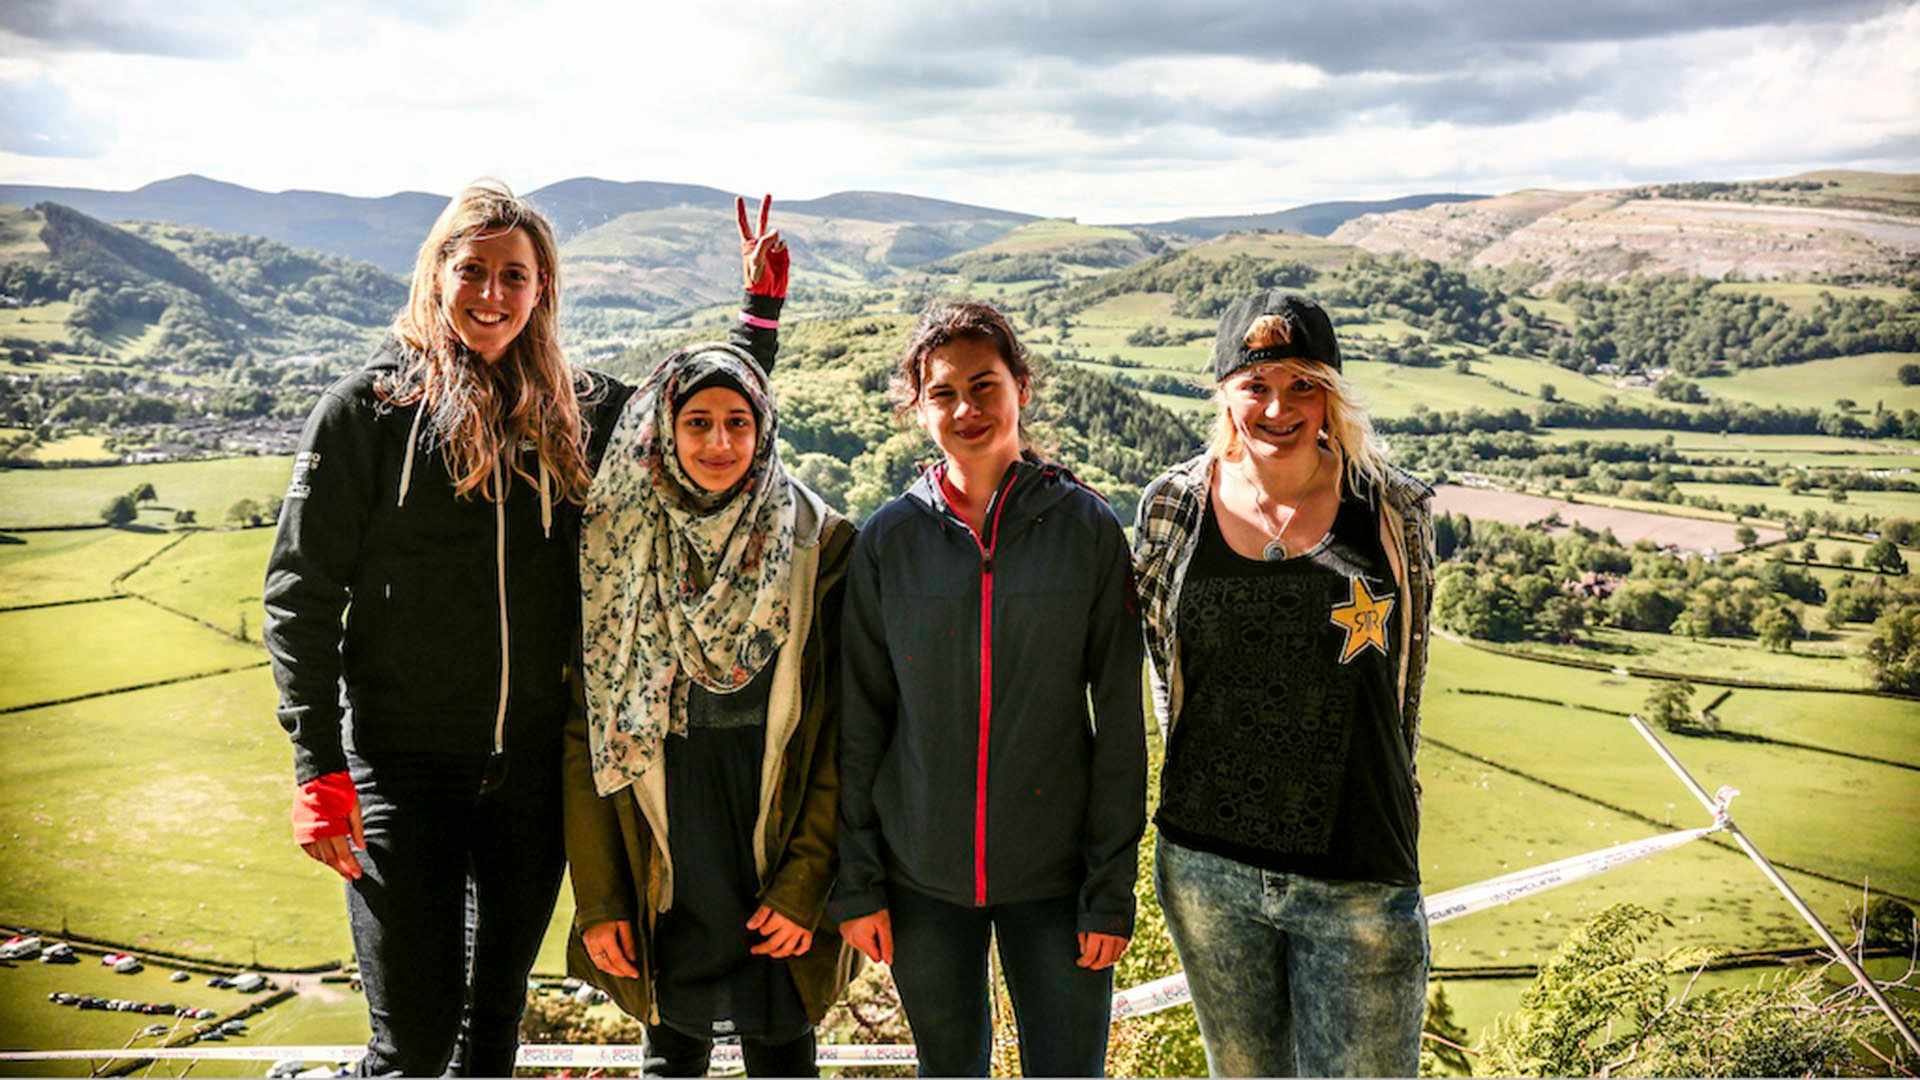 Rachel Atherton and some of the young women who make up the next generation of mountain bikers